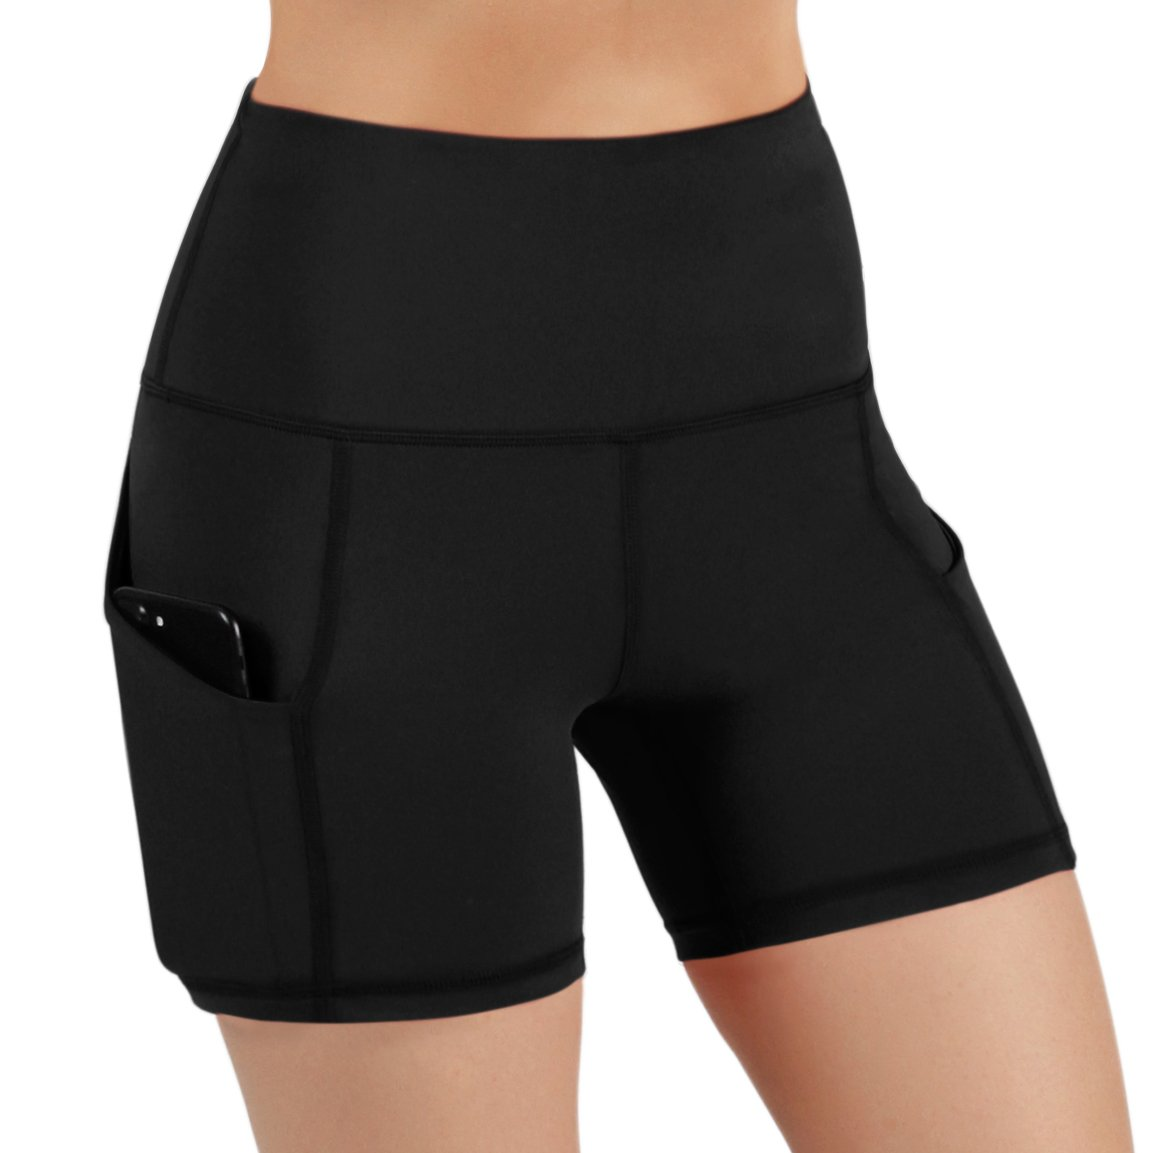 REETOYO Womens 8 High Waist Tummy Control Workout Running Yoga Shorts Side Pockets